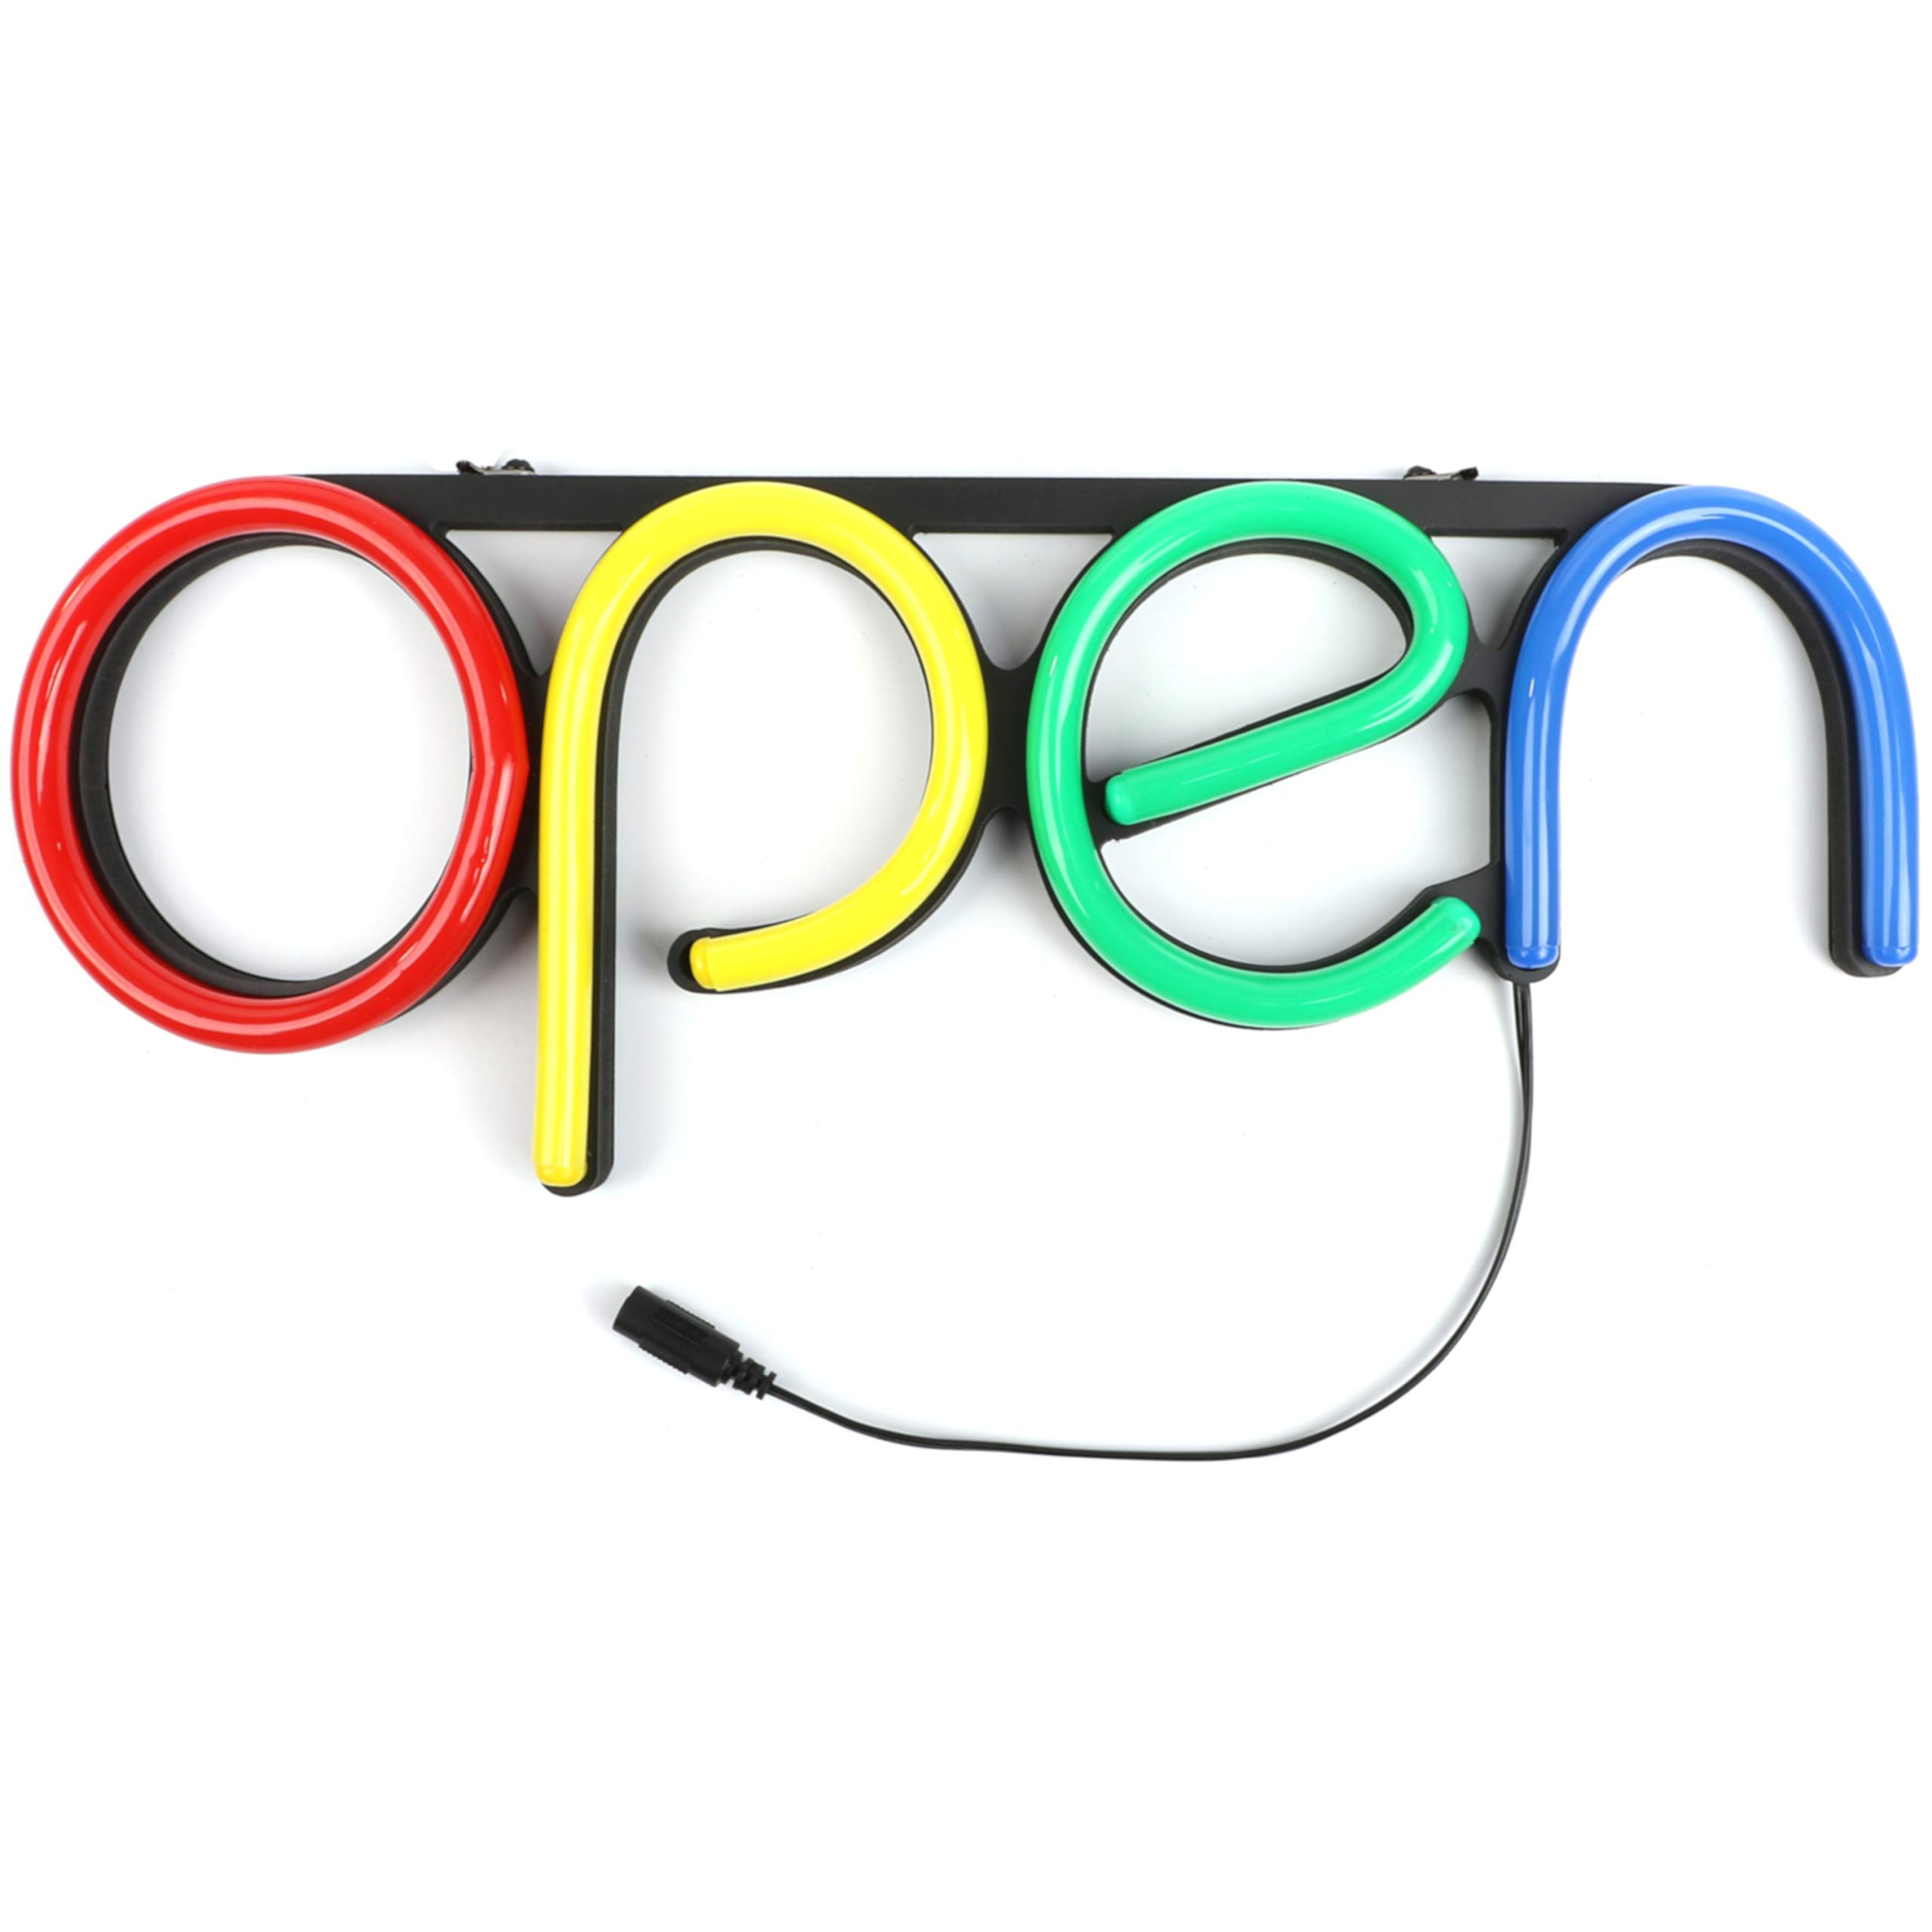 LED Open Sign for Business with ON/Off Switch | Very Bright NEON Signs for Storefronts (Red-Yellow-Green-Blue, 15.7 x 5.9 Inches)